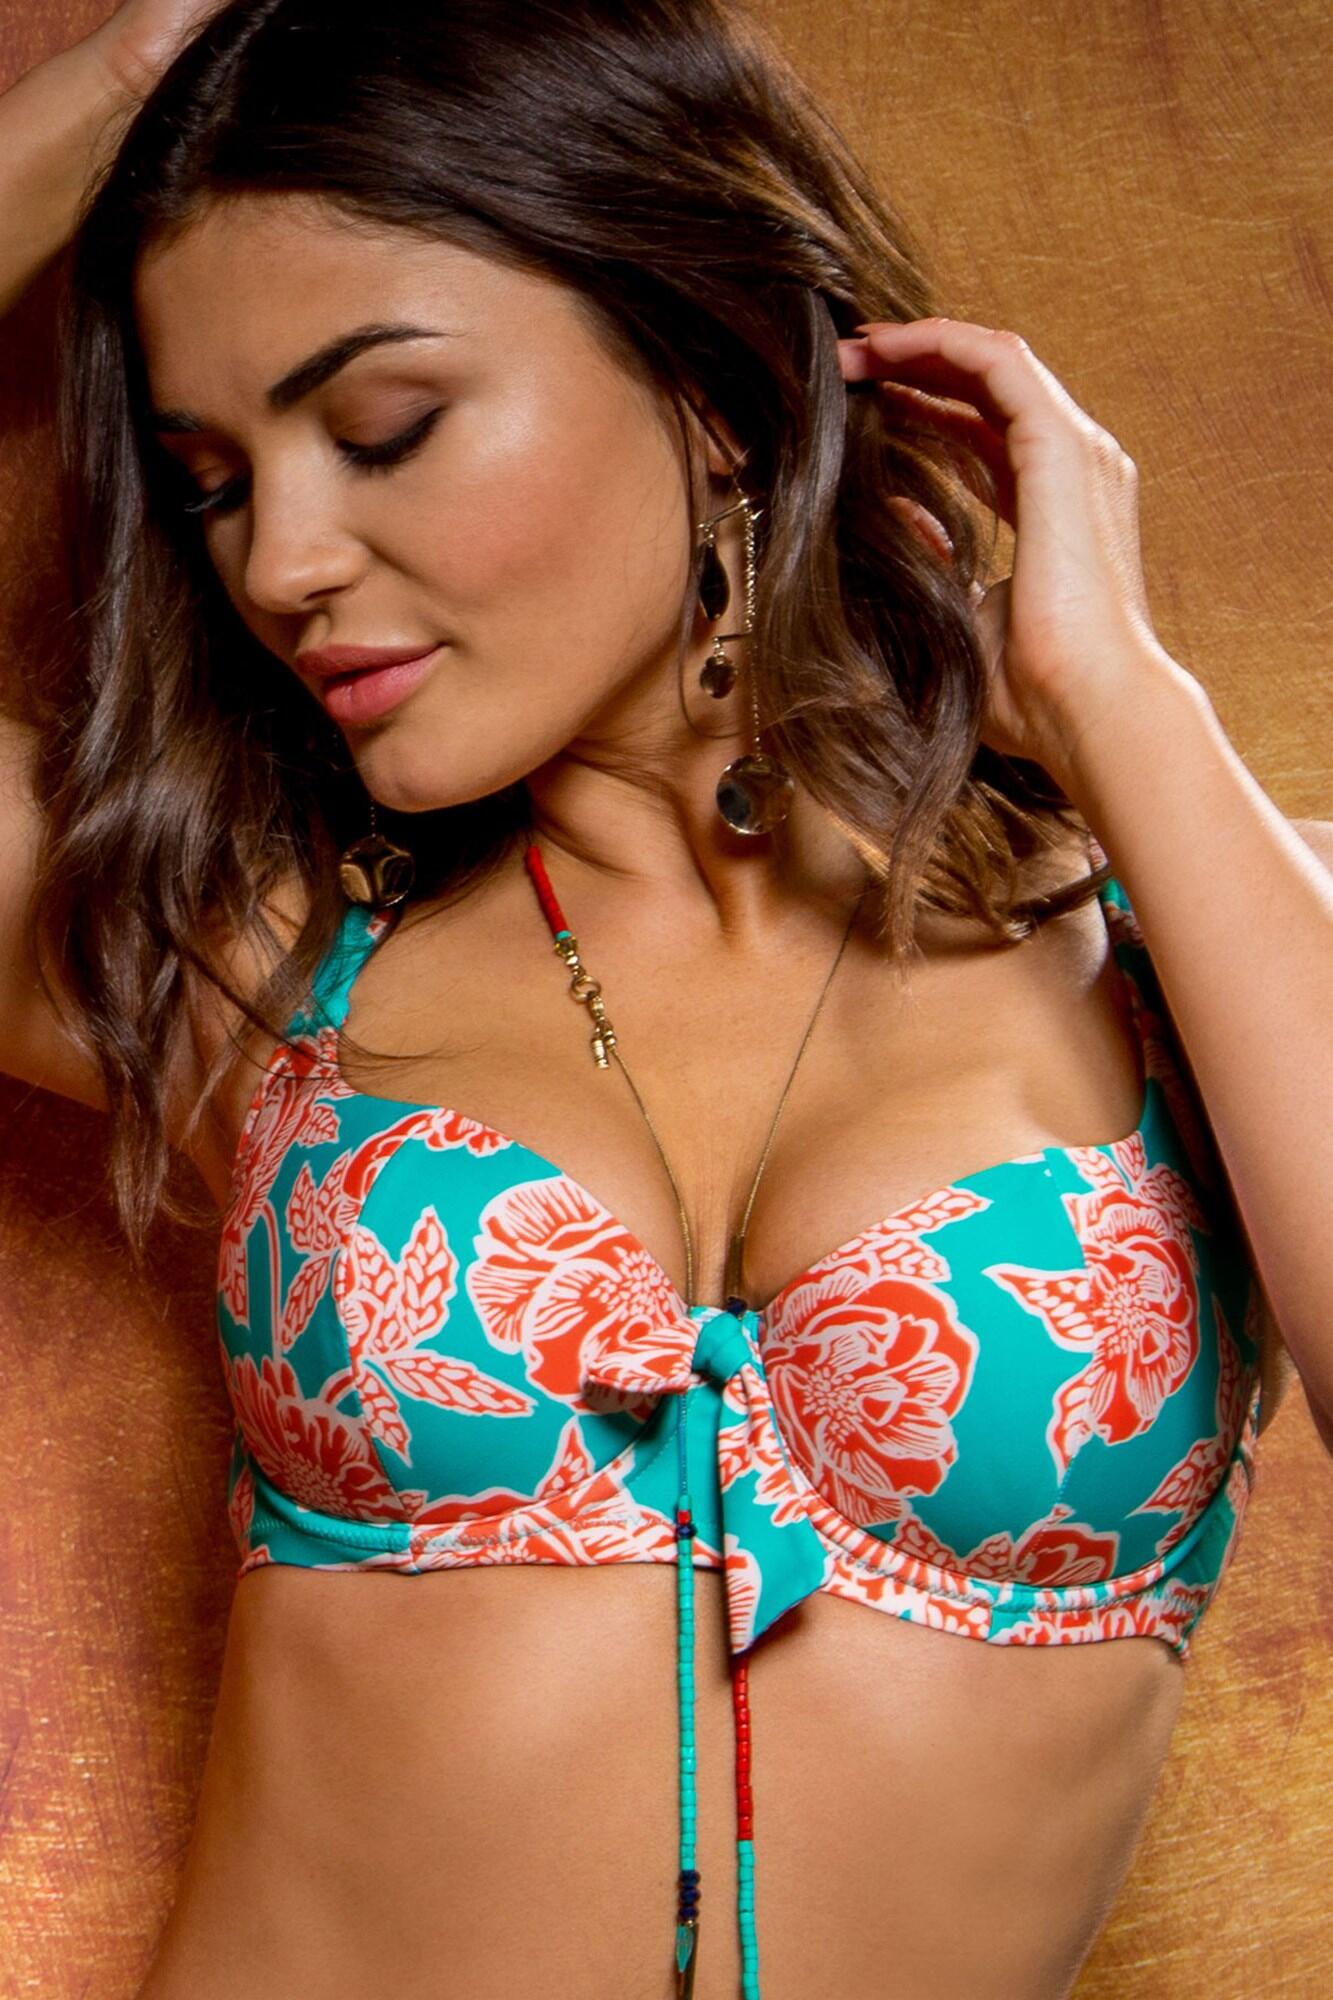 Big Sur Sweetheart Underwired Top - Turquoise/Orange